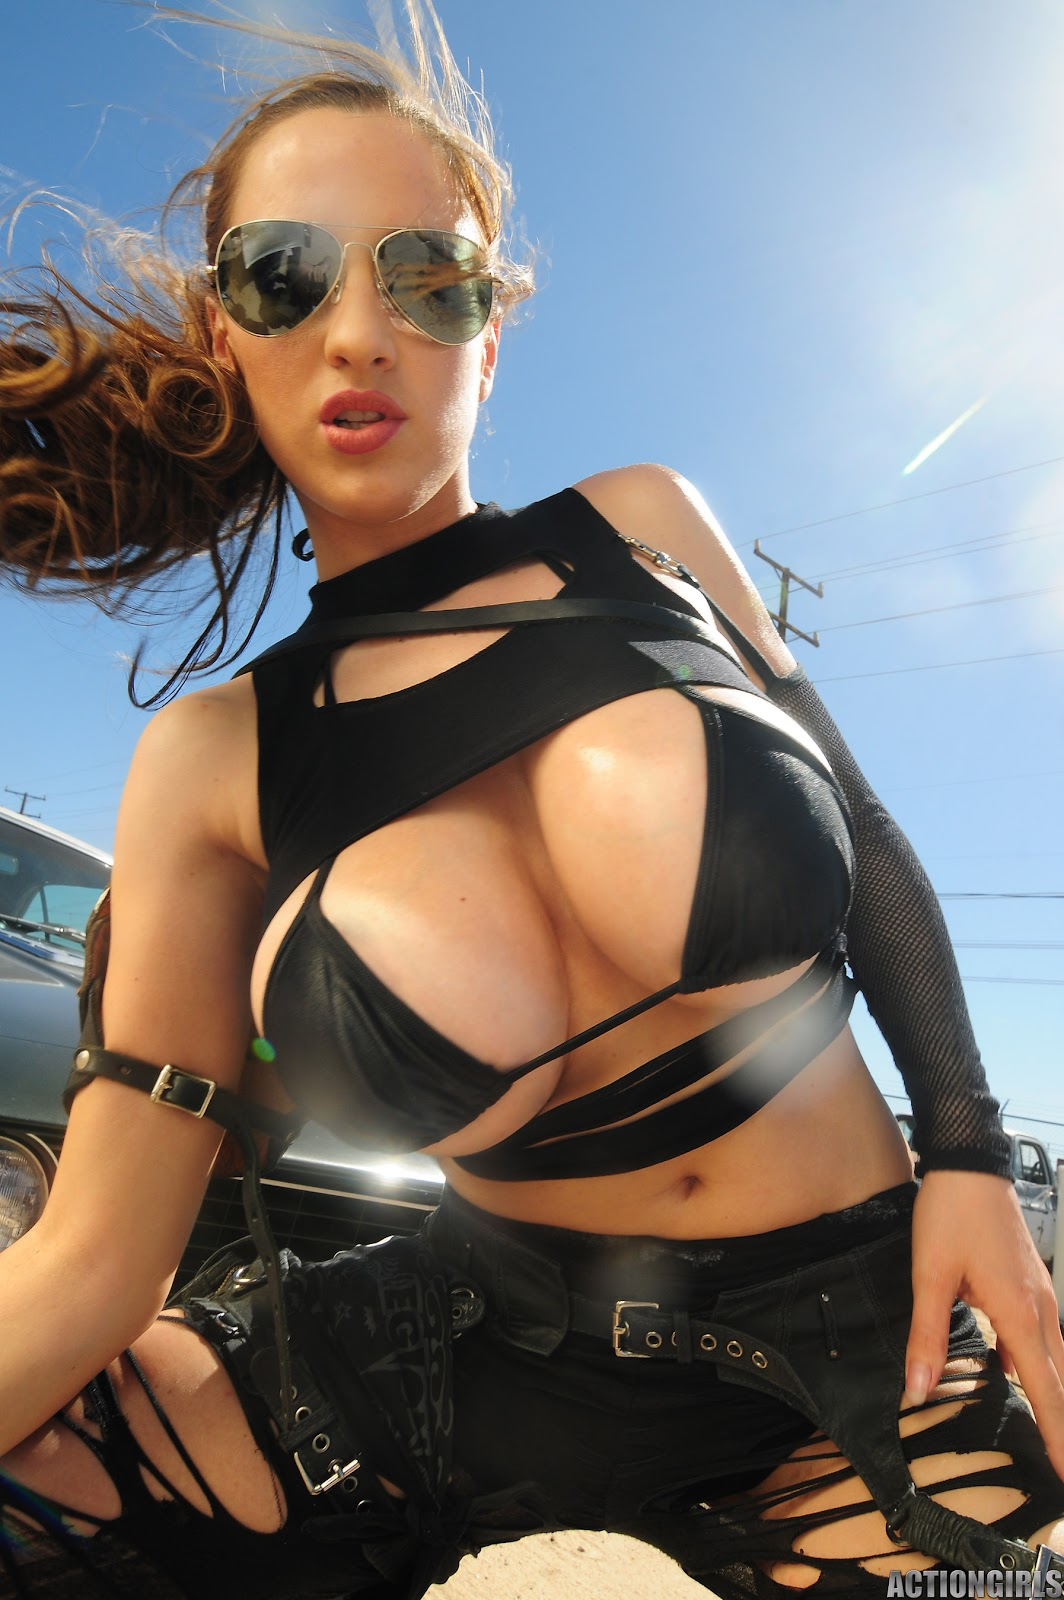 Red Rose Girl Wallpapers Jordan Carver Mad Jordan Actiongirls